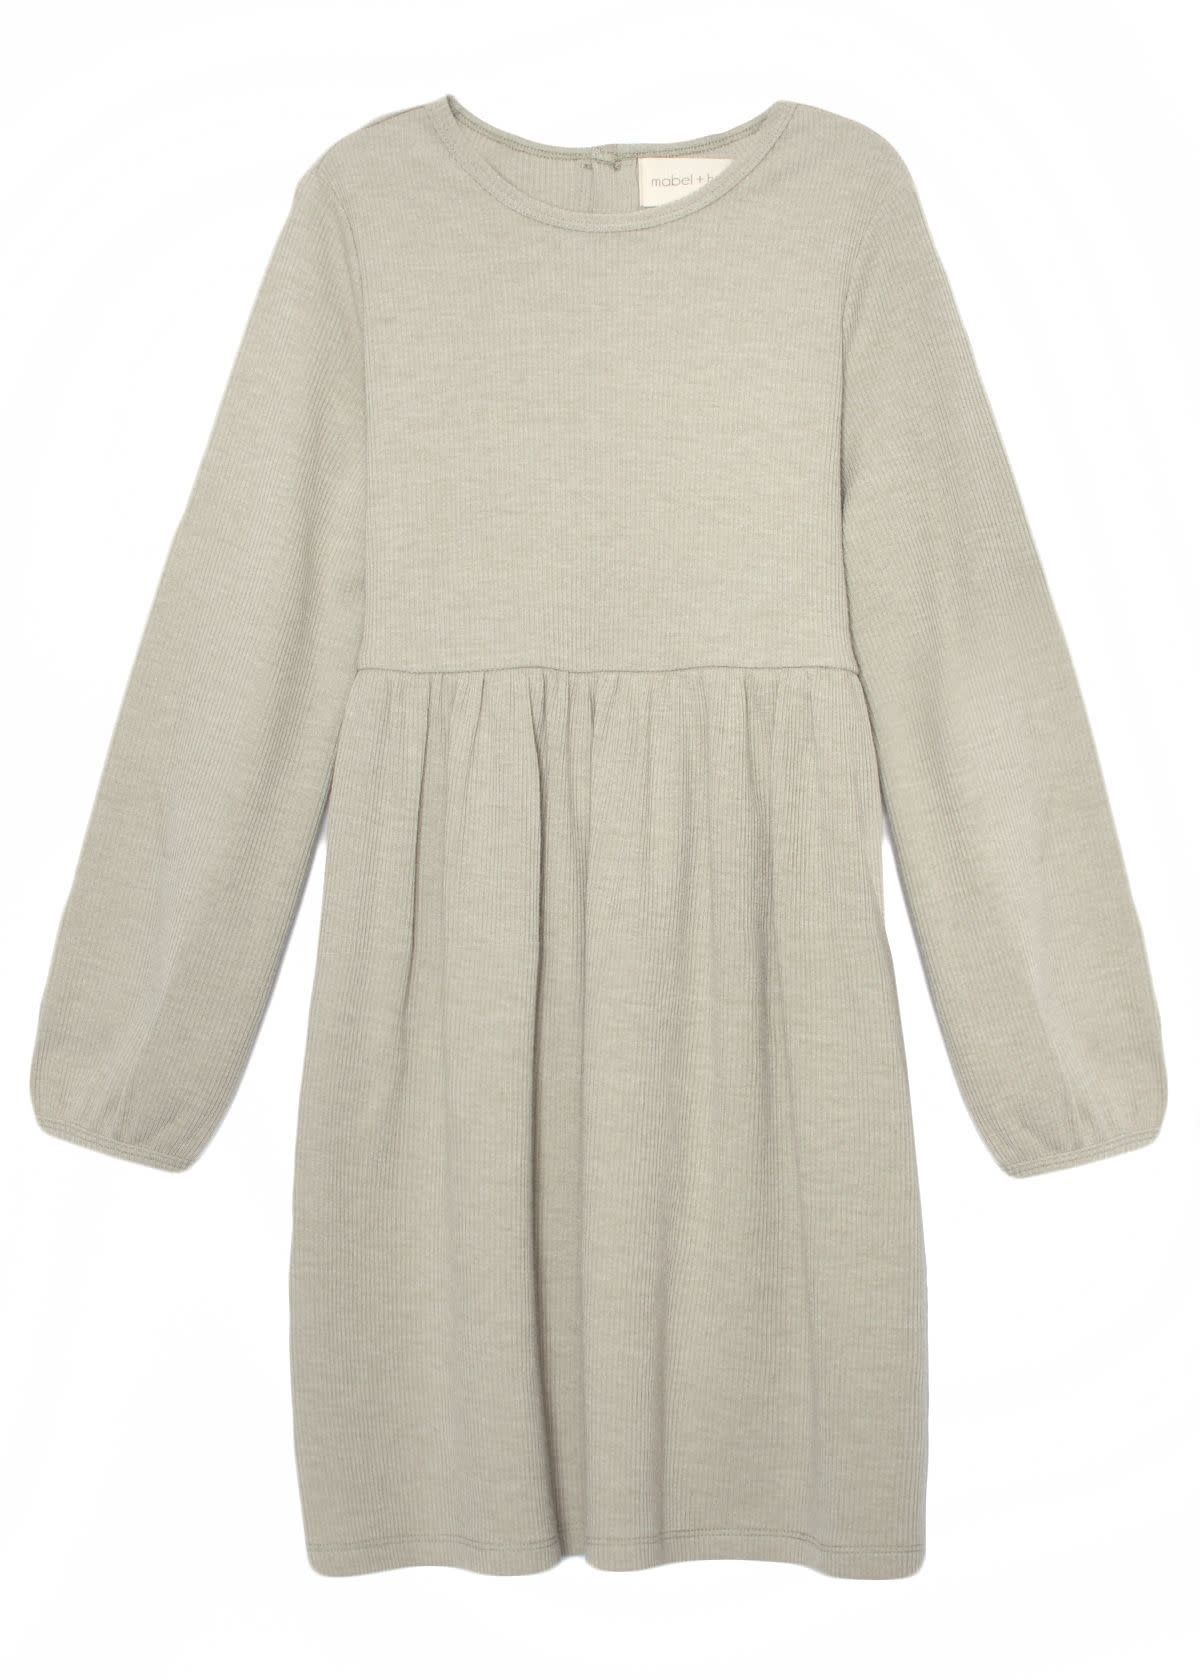 Mabel and Honey Olive and Fig Knit Dress